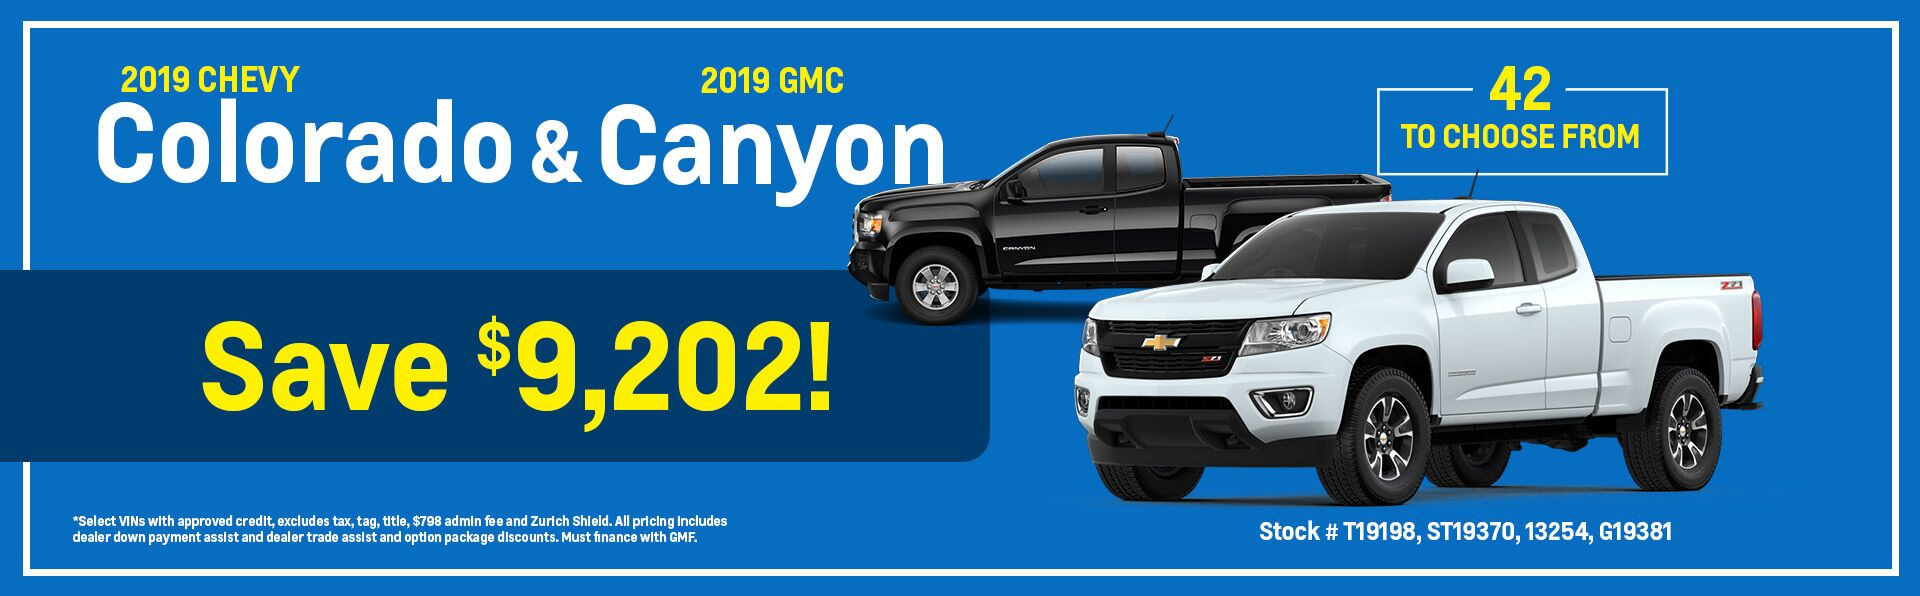 2019 Chevy Colorado and 2019 GMC Canyon